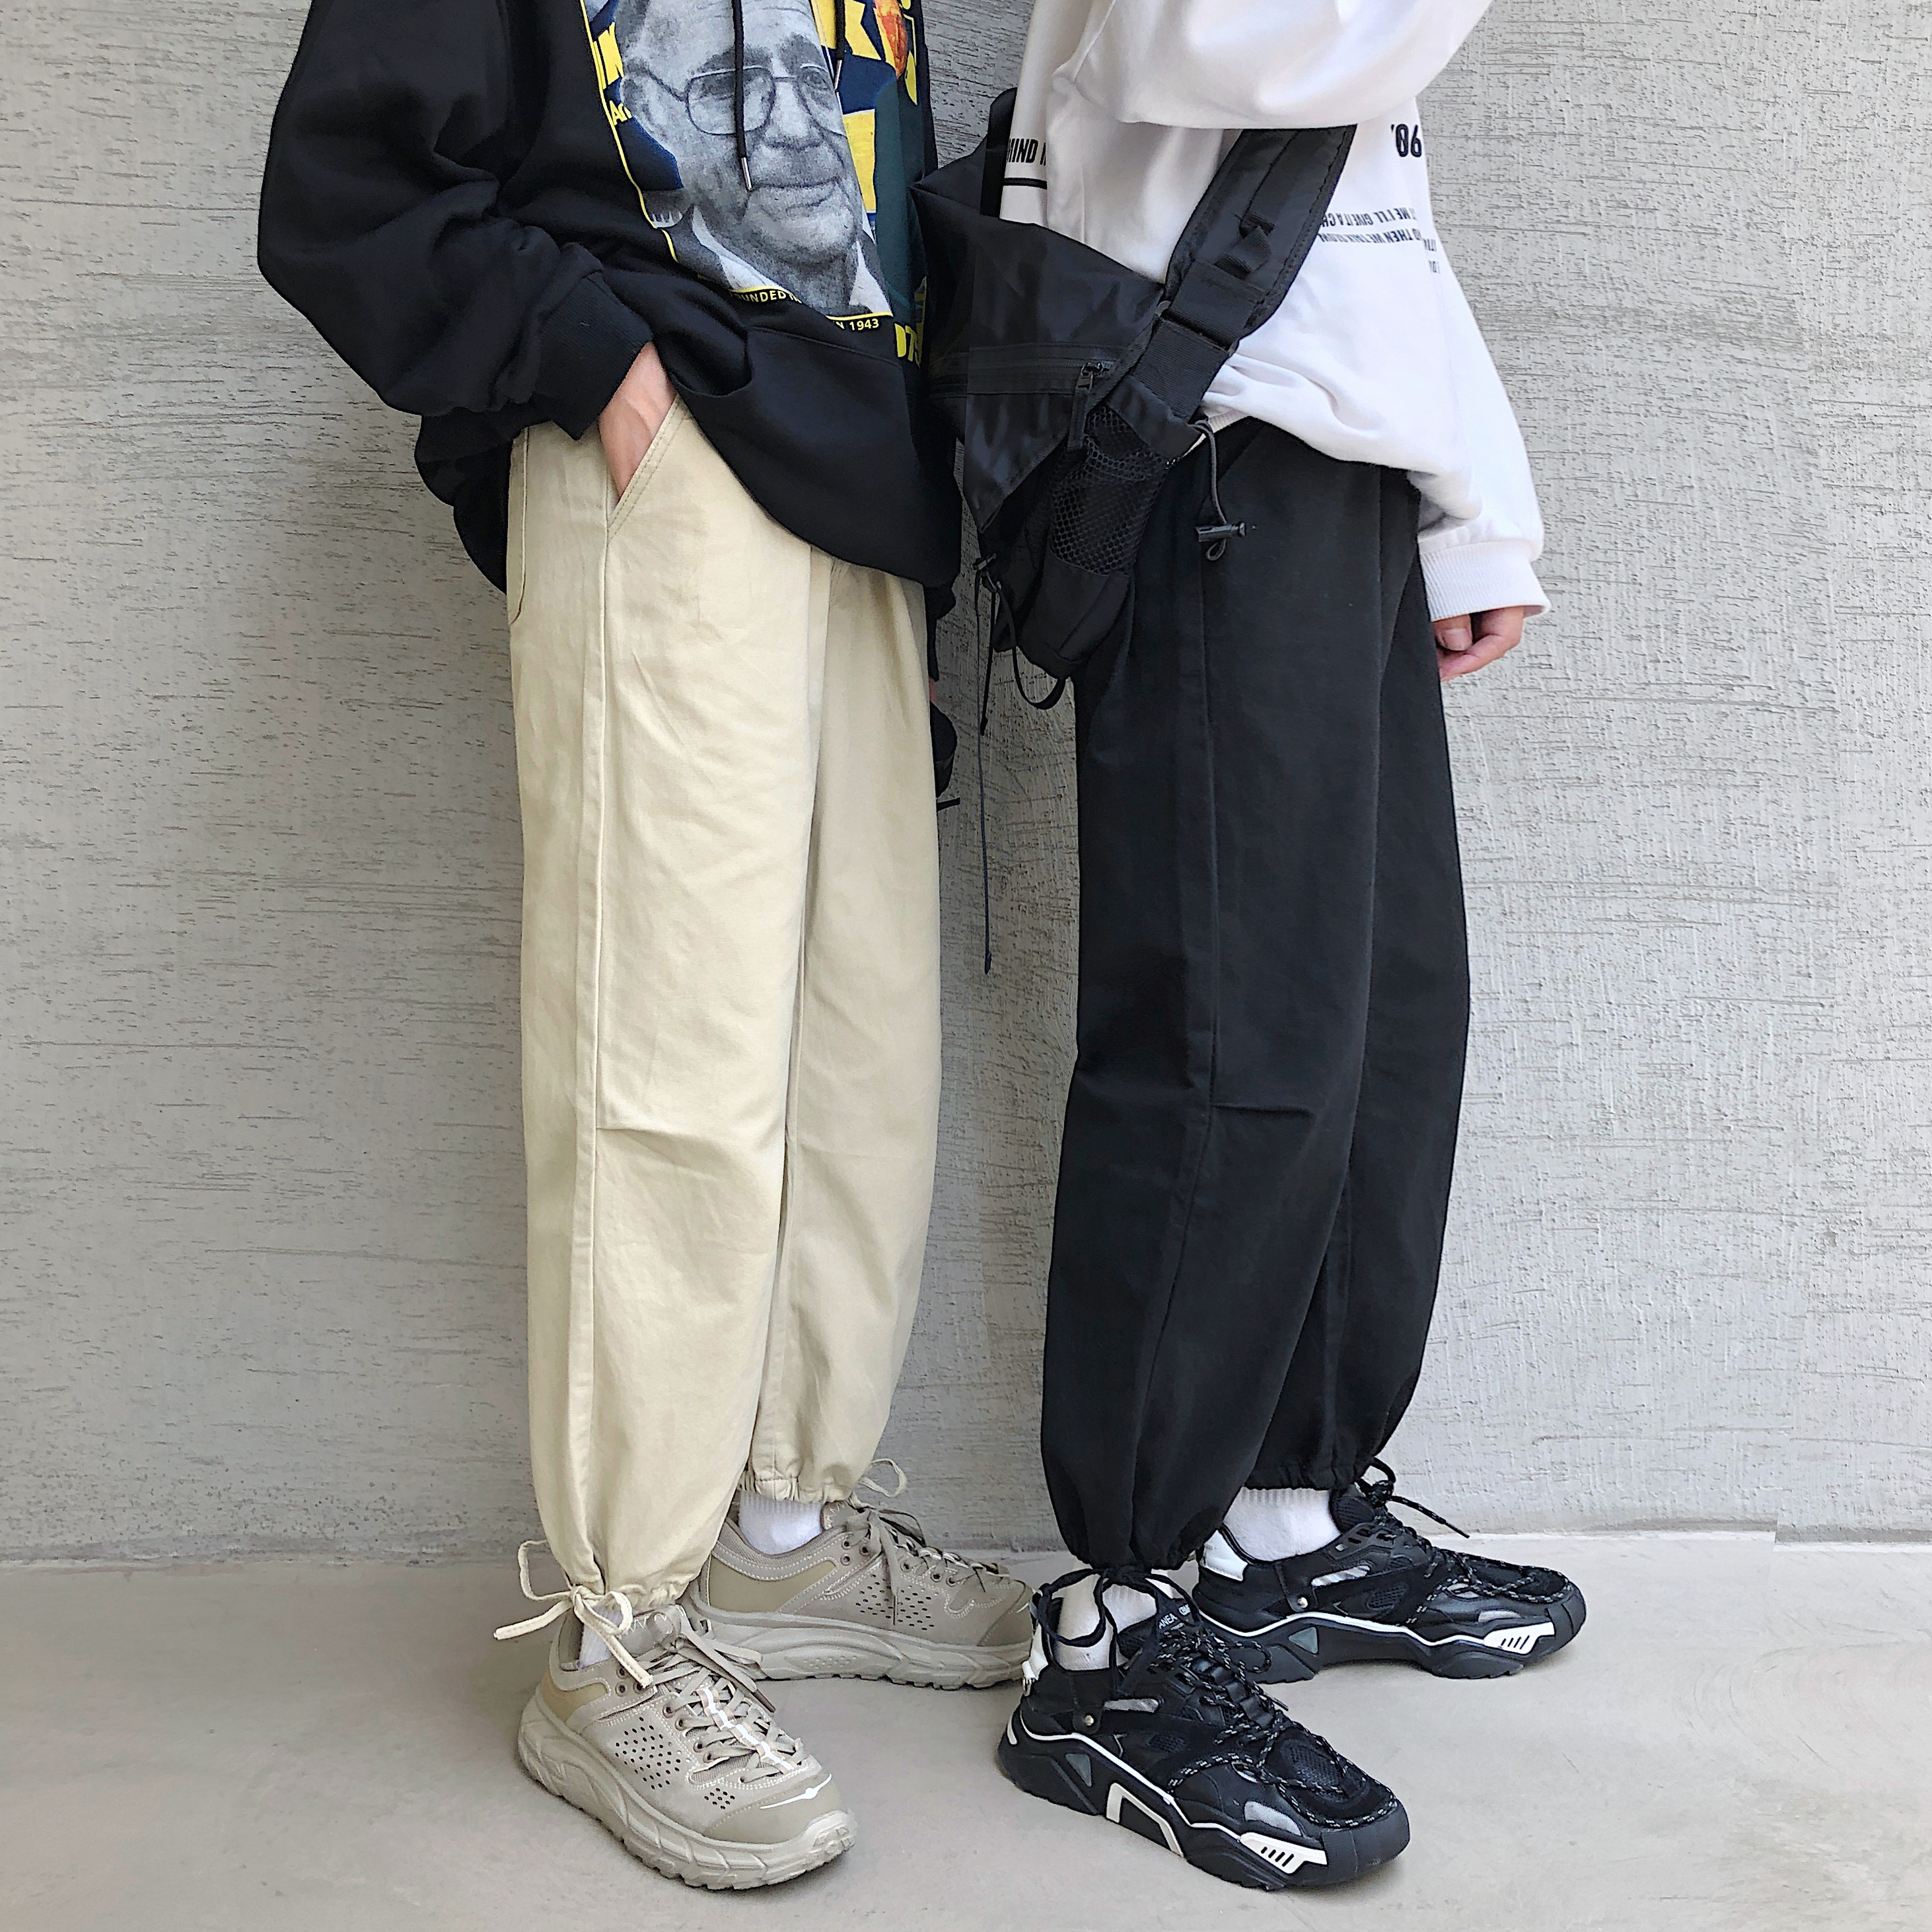 Casual pants are sold well in class clothes; new autumn lovers clothes: c319a-x82 P50 control 68